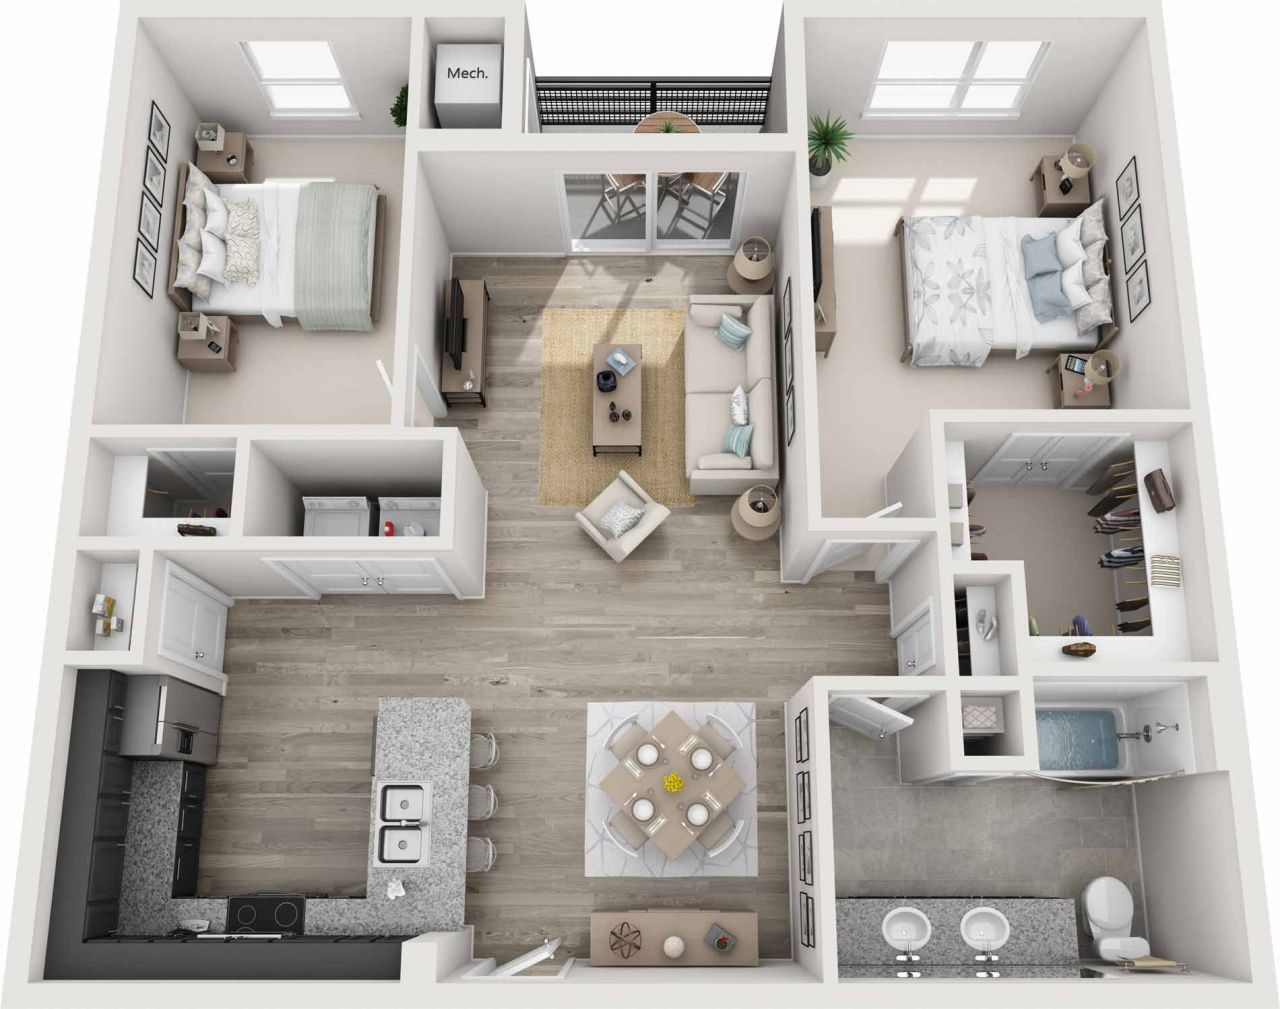 2 Bedroom Apartments Near Me For Rent Townhouse For Rent Two Bedroom House Two Bedroom Apartments